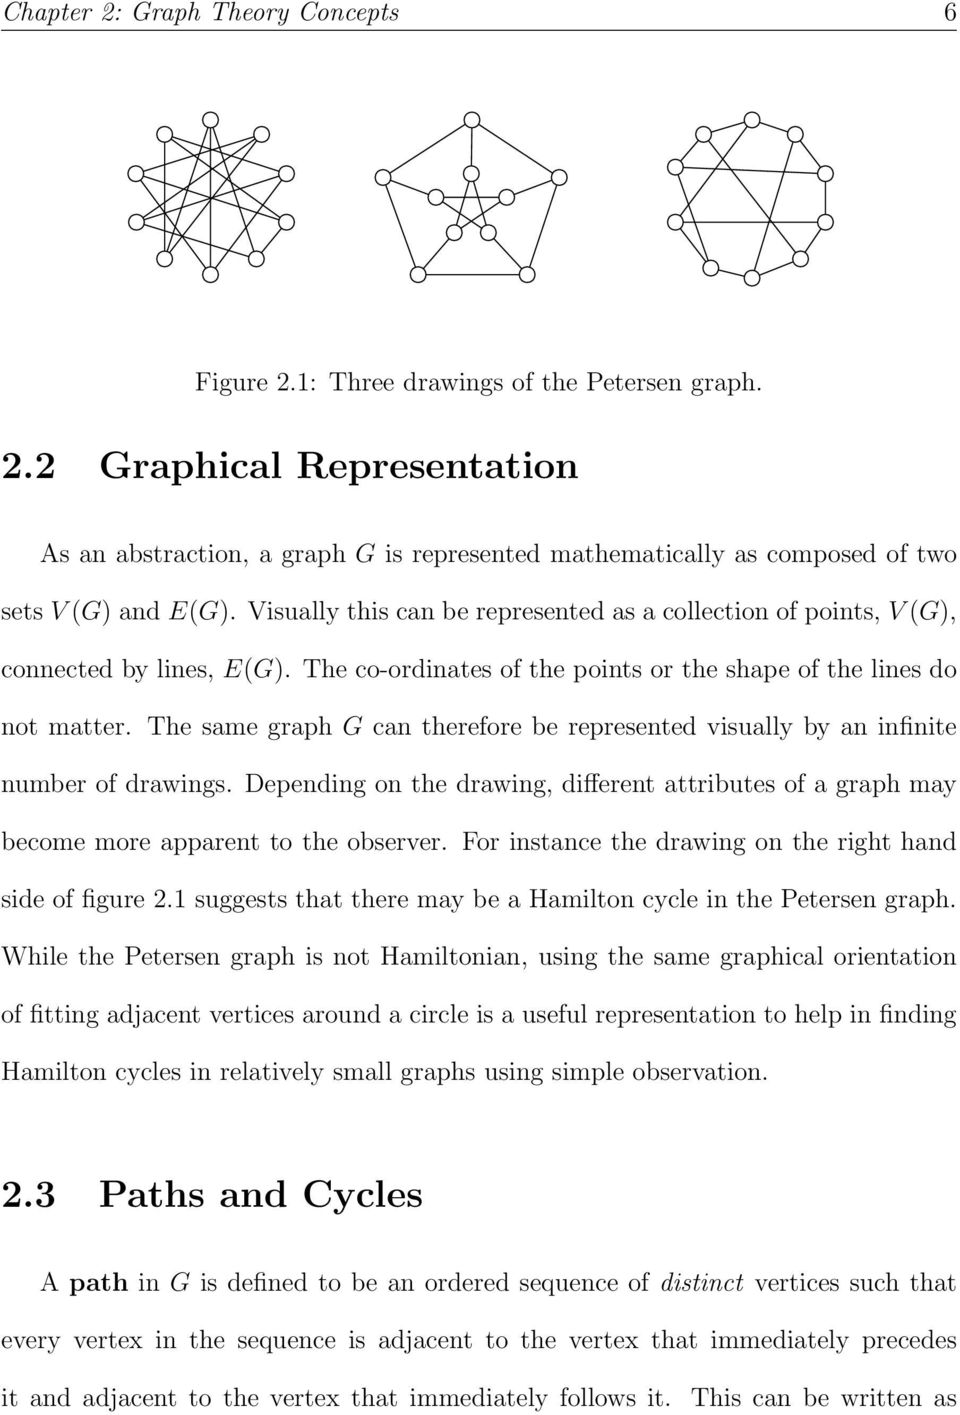 The same graph G can therefore be represented visually by an infinite number of drawings. Depending on the drawing, different attributes of a graph may become more apparent to the observer.